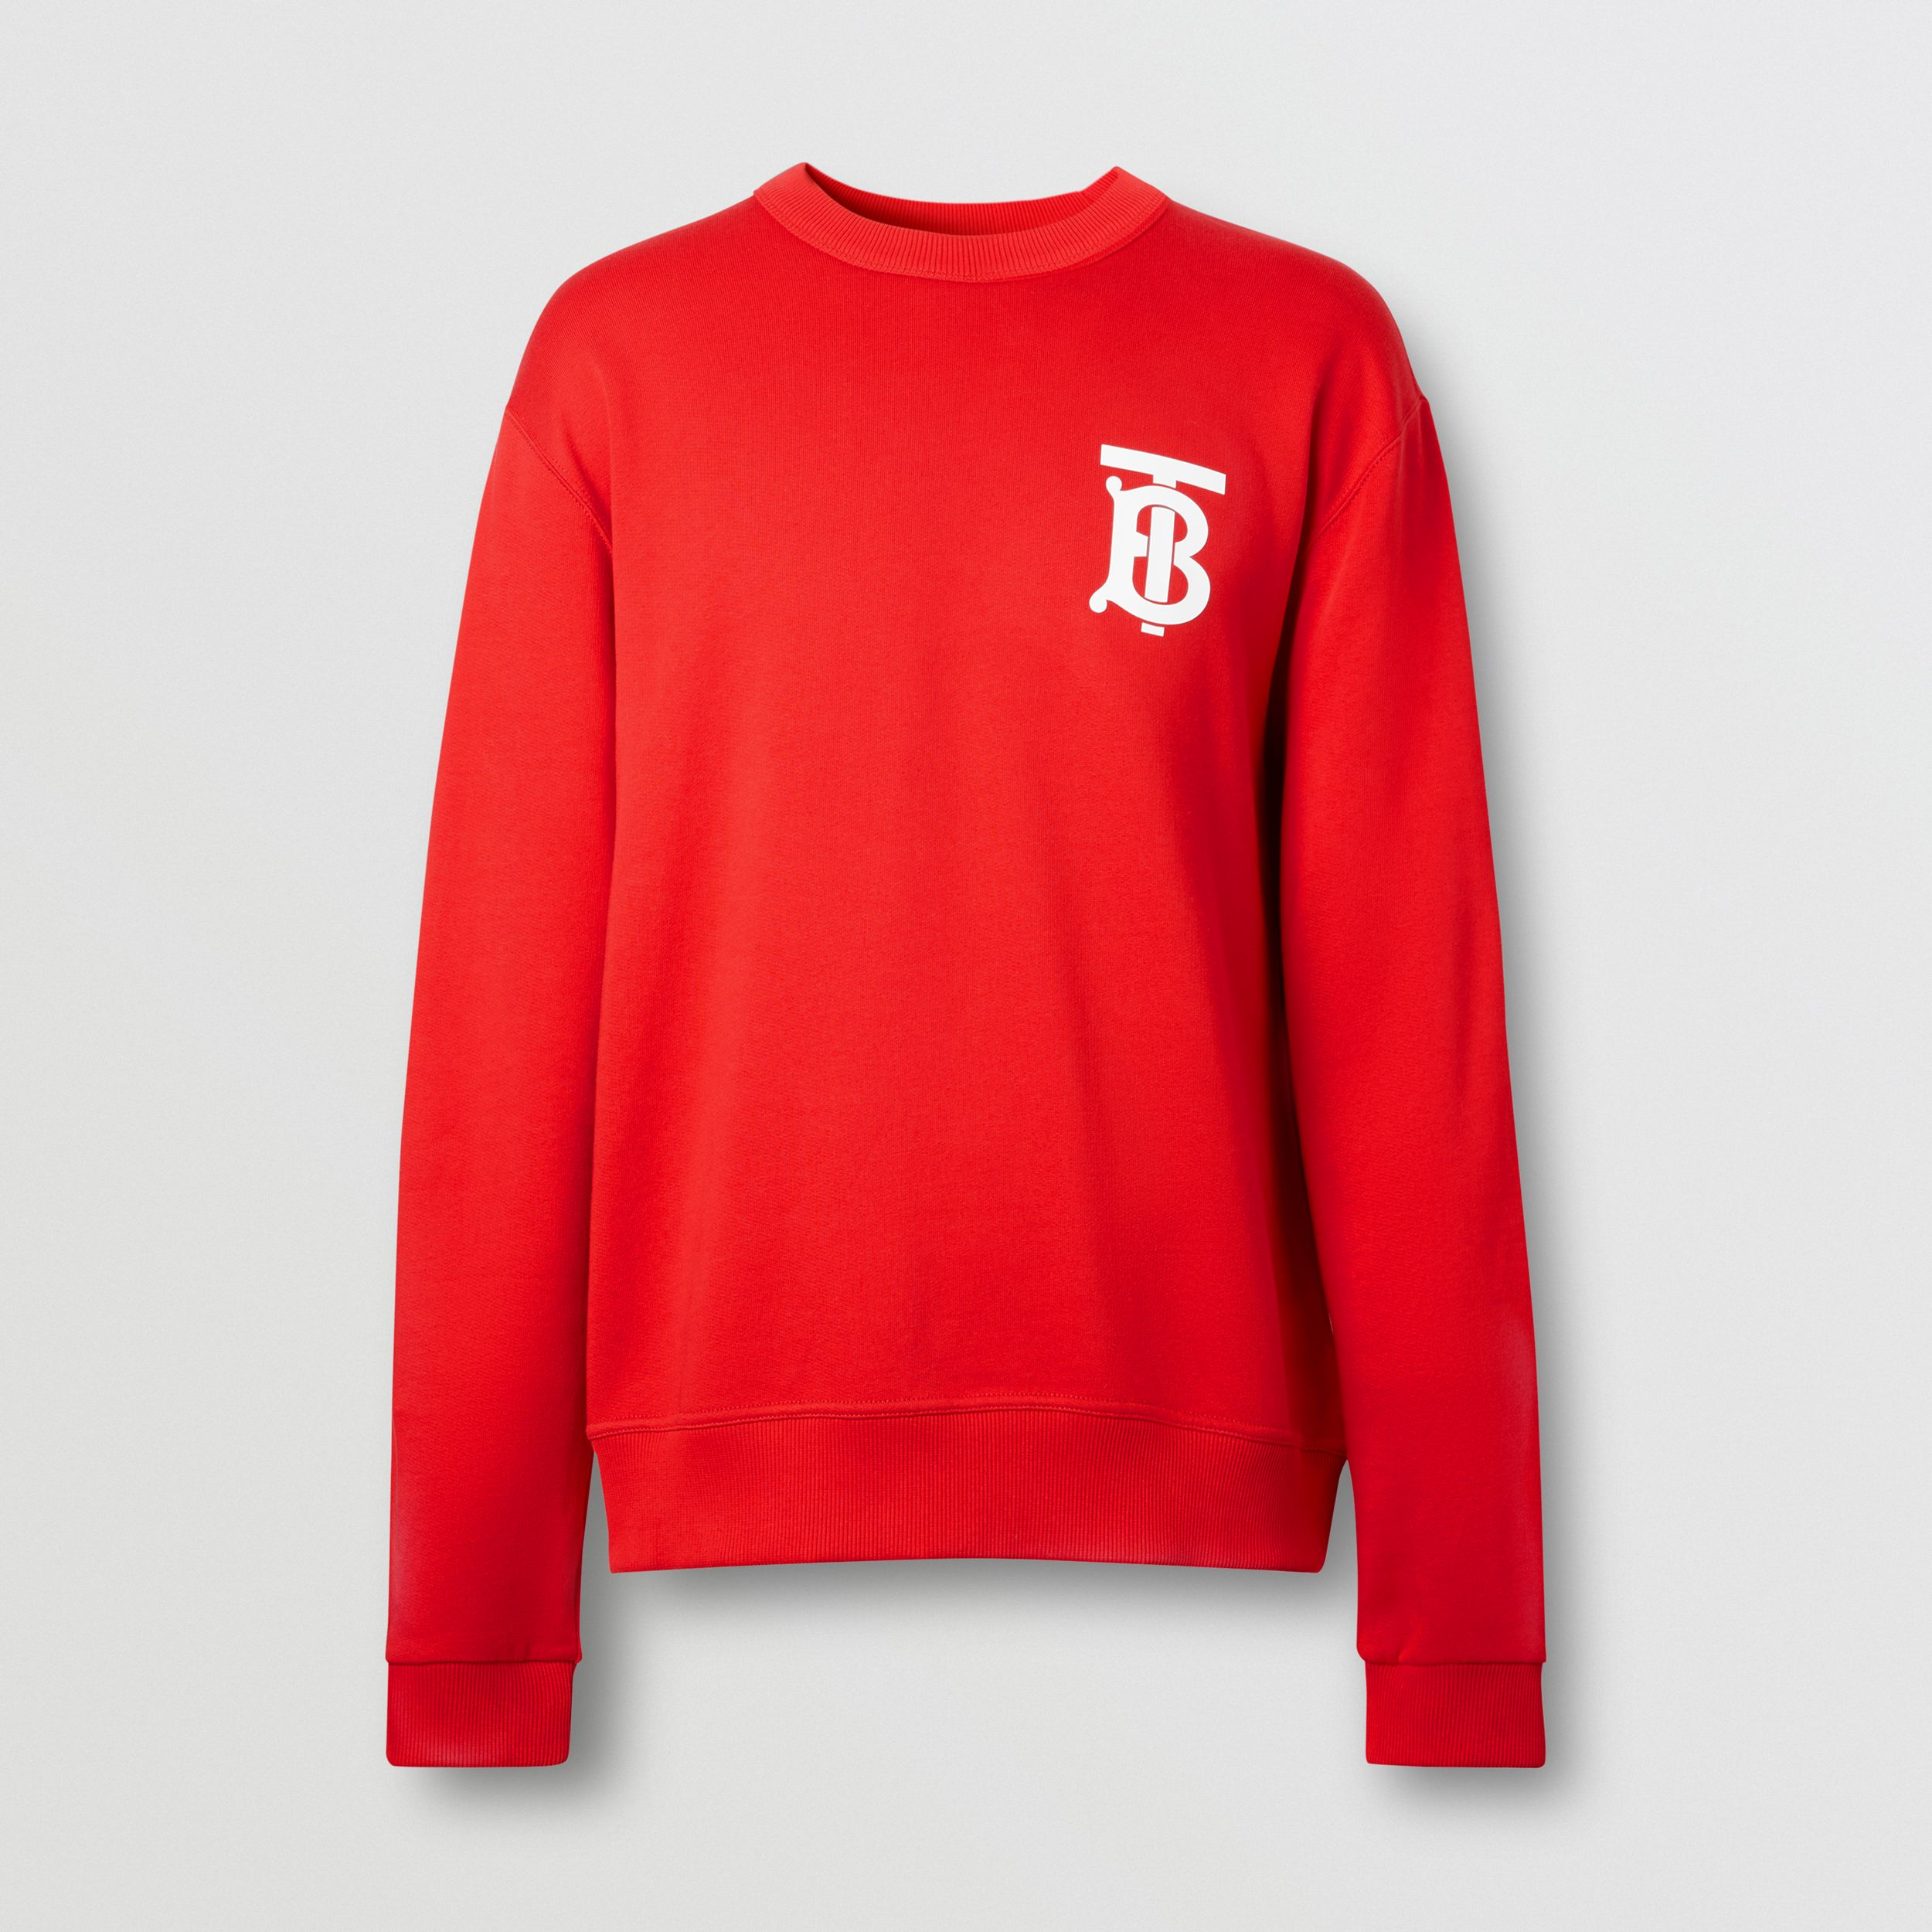 Monogram Motif Cotton Sweatshirt in Bright Red - Men | Burberry Australia - 4